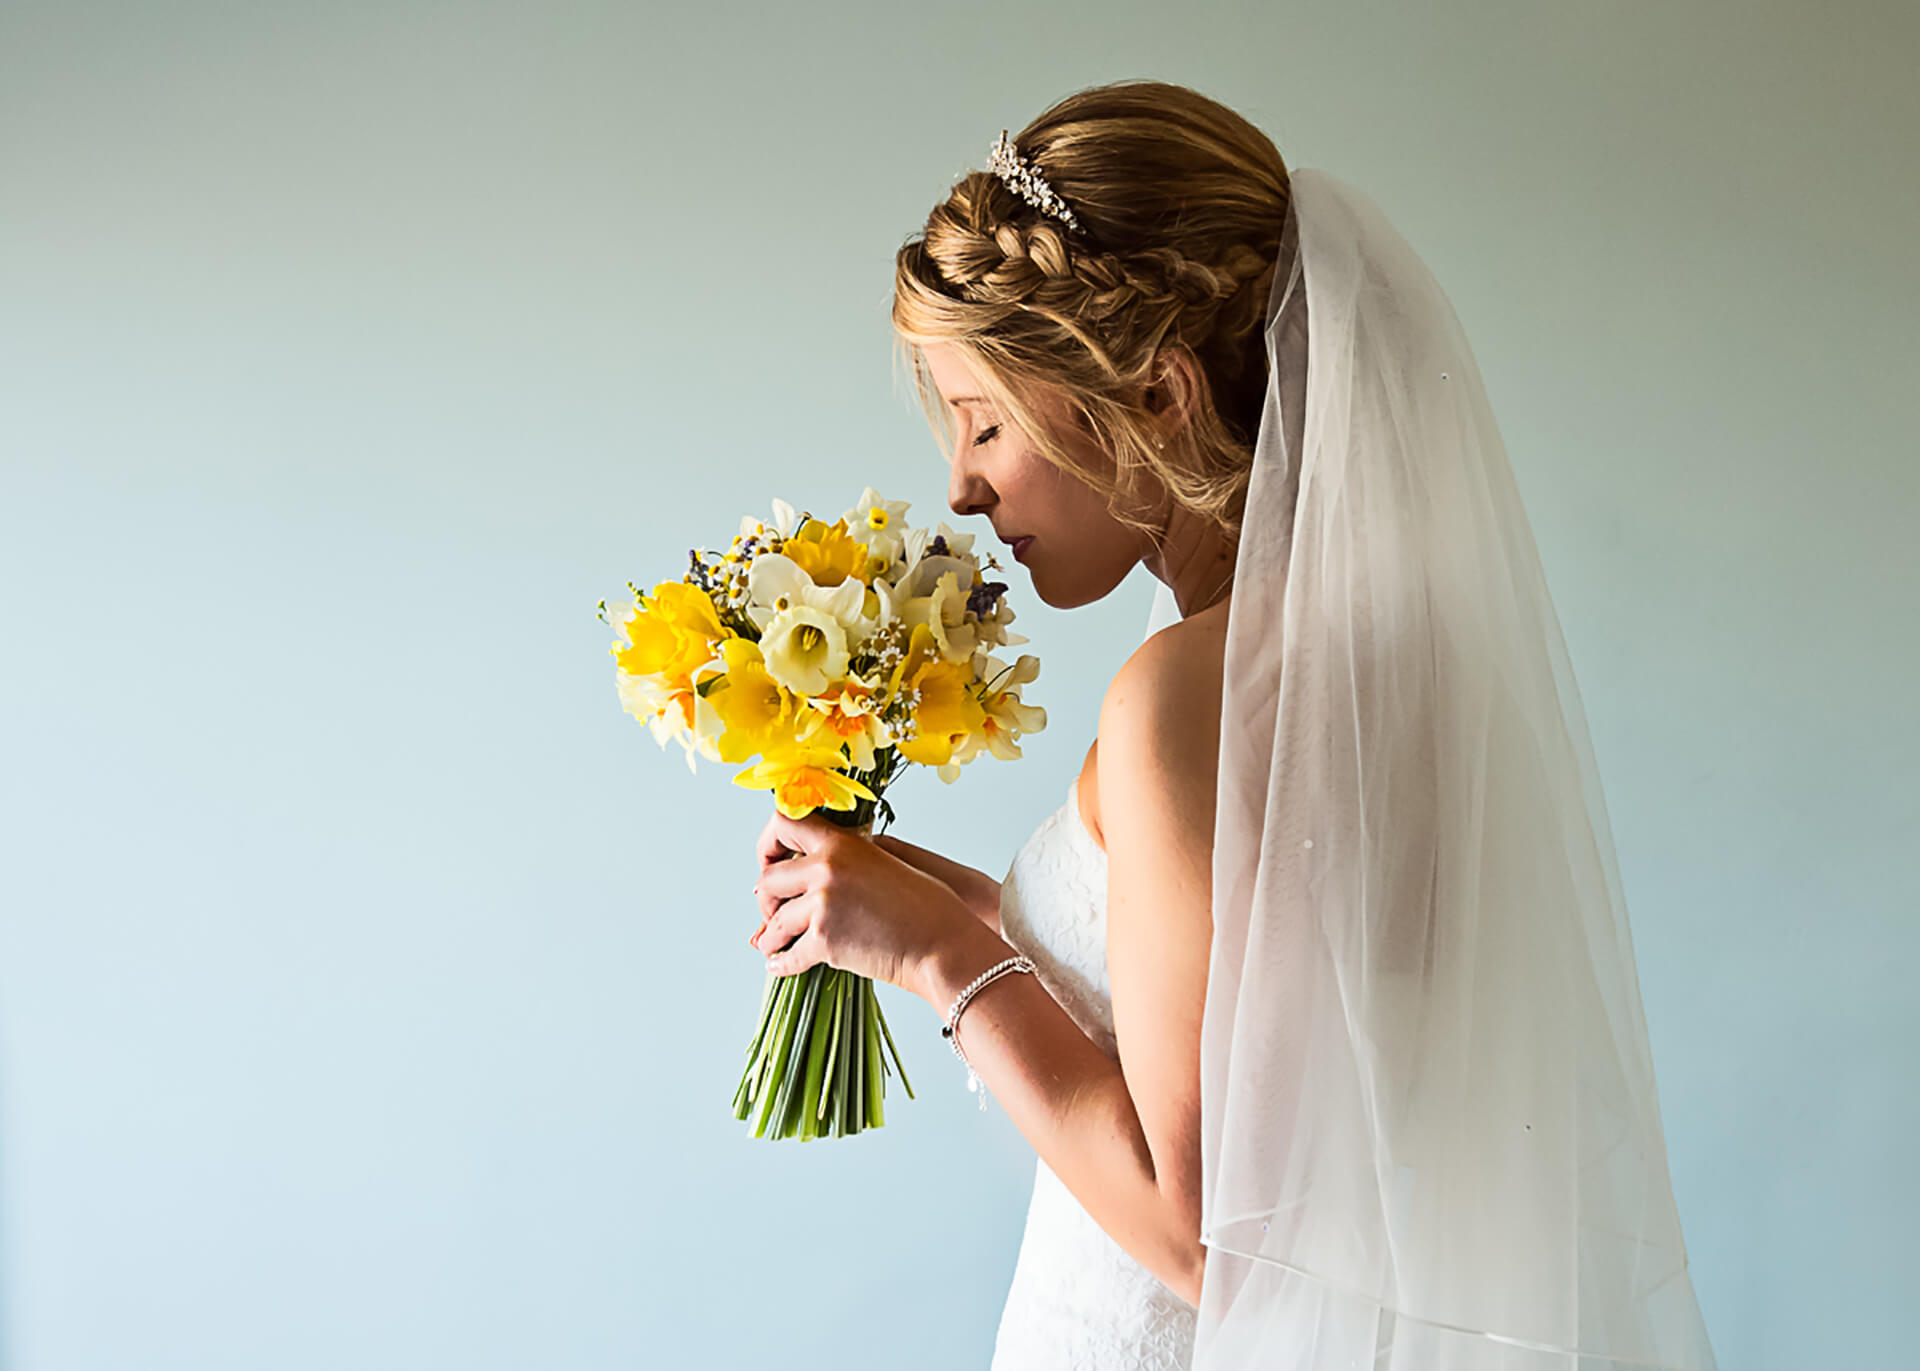 Spring has sprung! The beautiful Lauren with her bouquet of Daisies and Daffs.